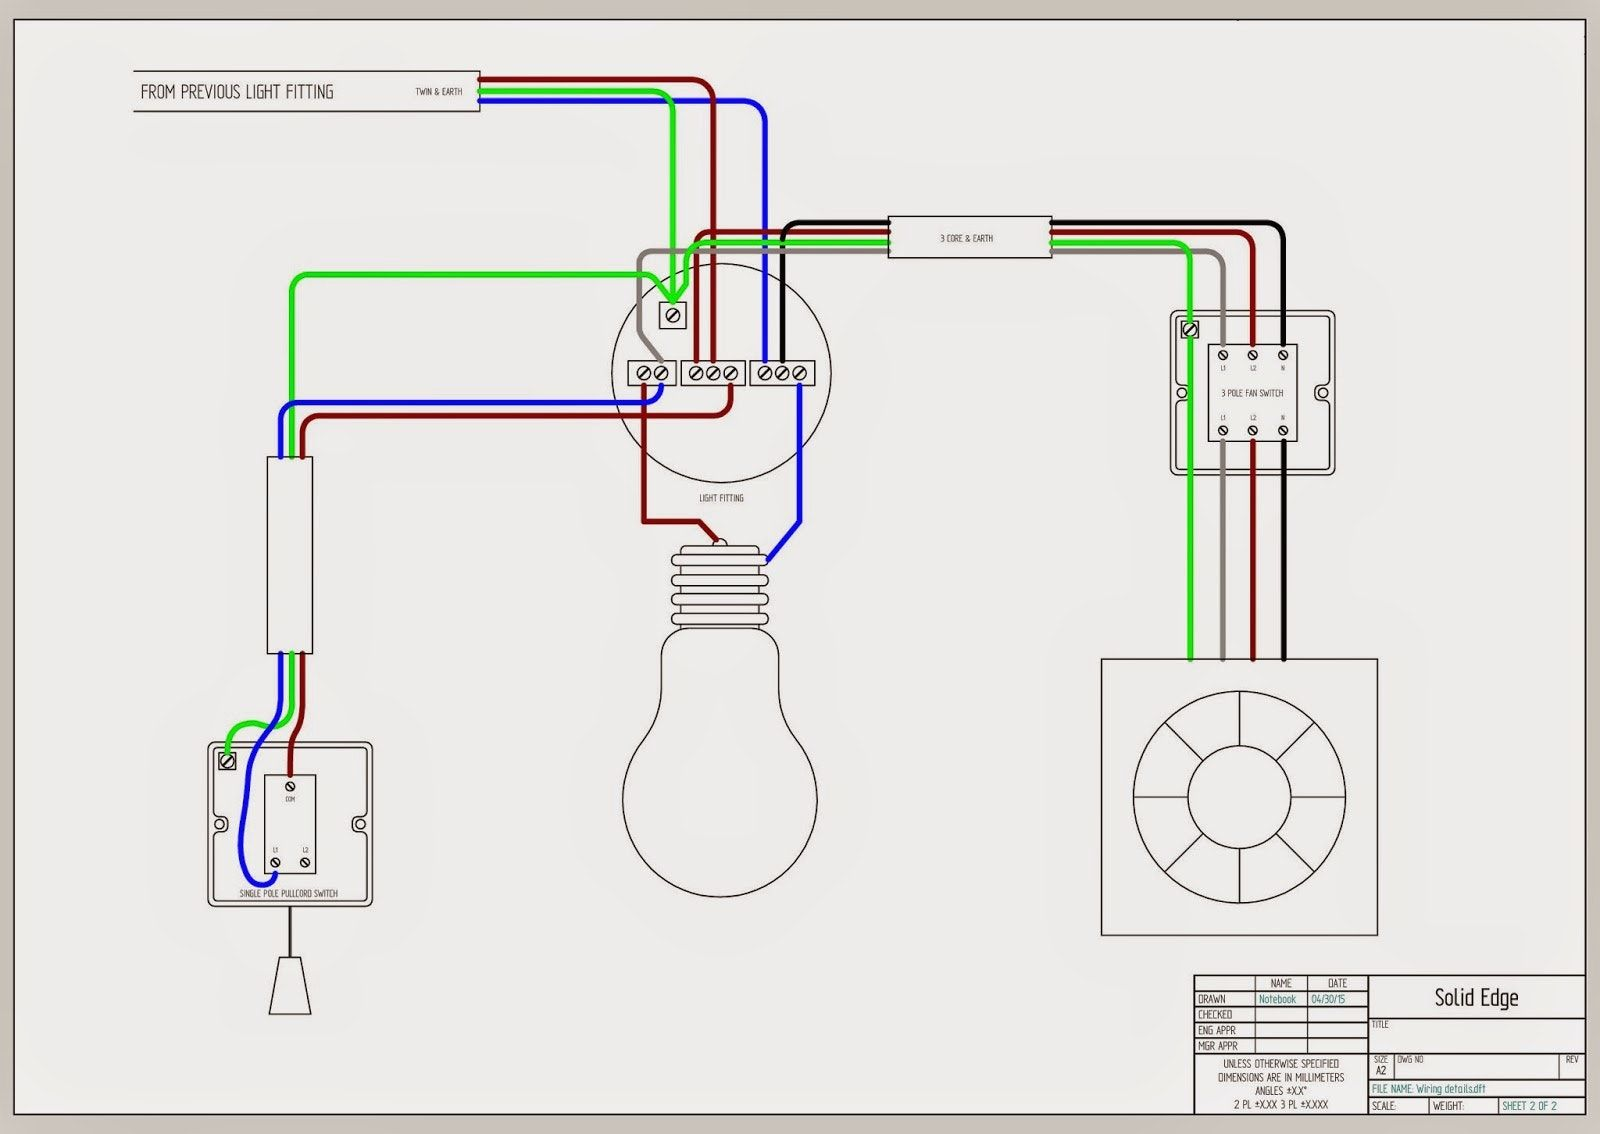 Bathroom Fan Light Combo Wiring Diagram from i.pinimg.com